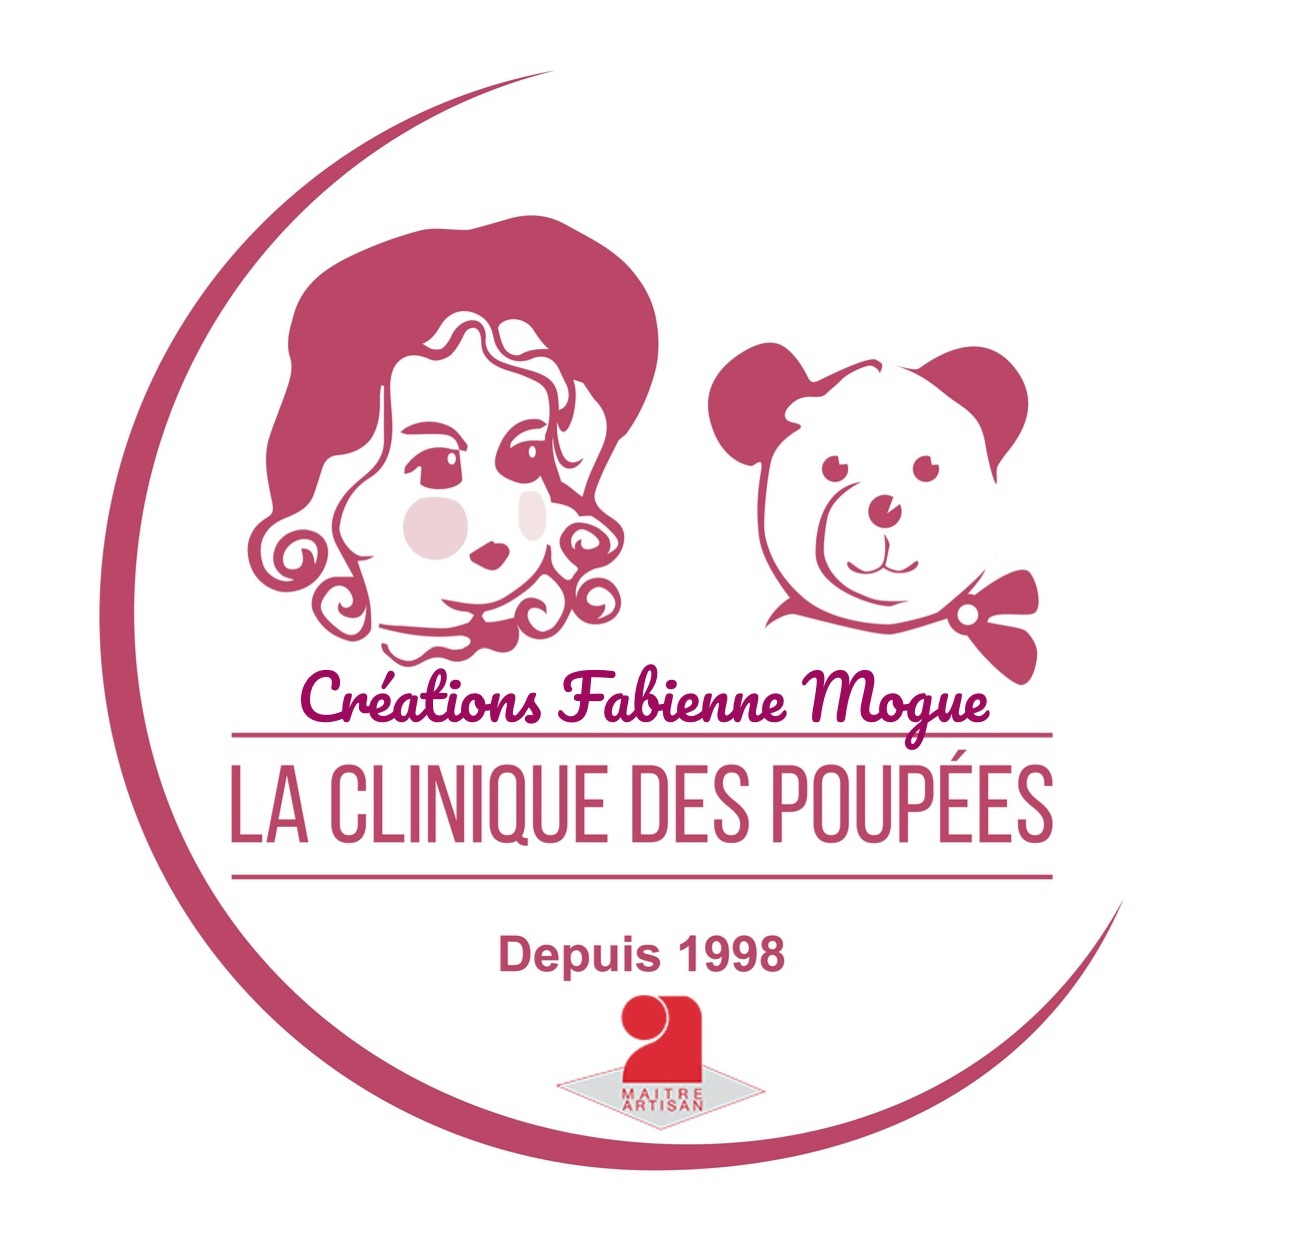 r36797_44_la_clinique_des_poupees_mogue.jpg